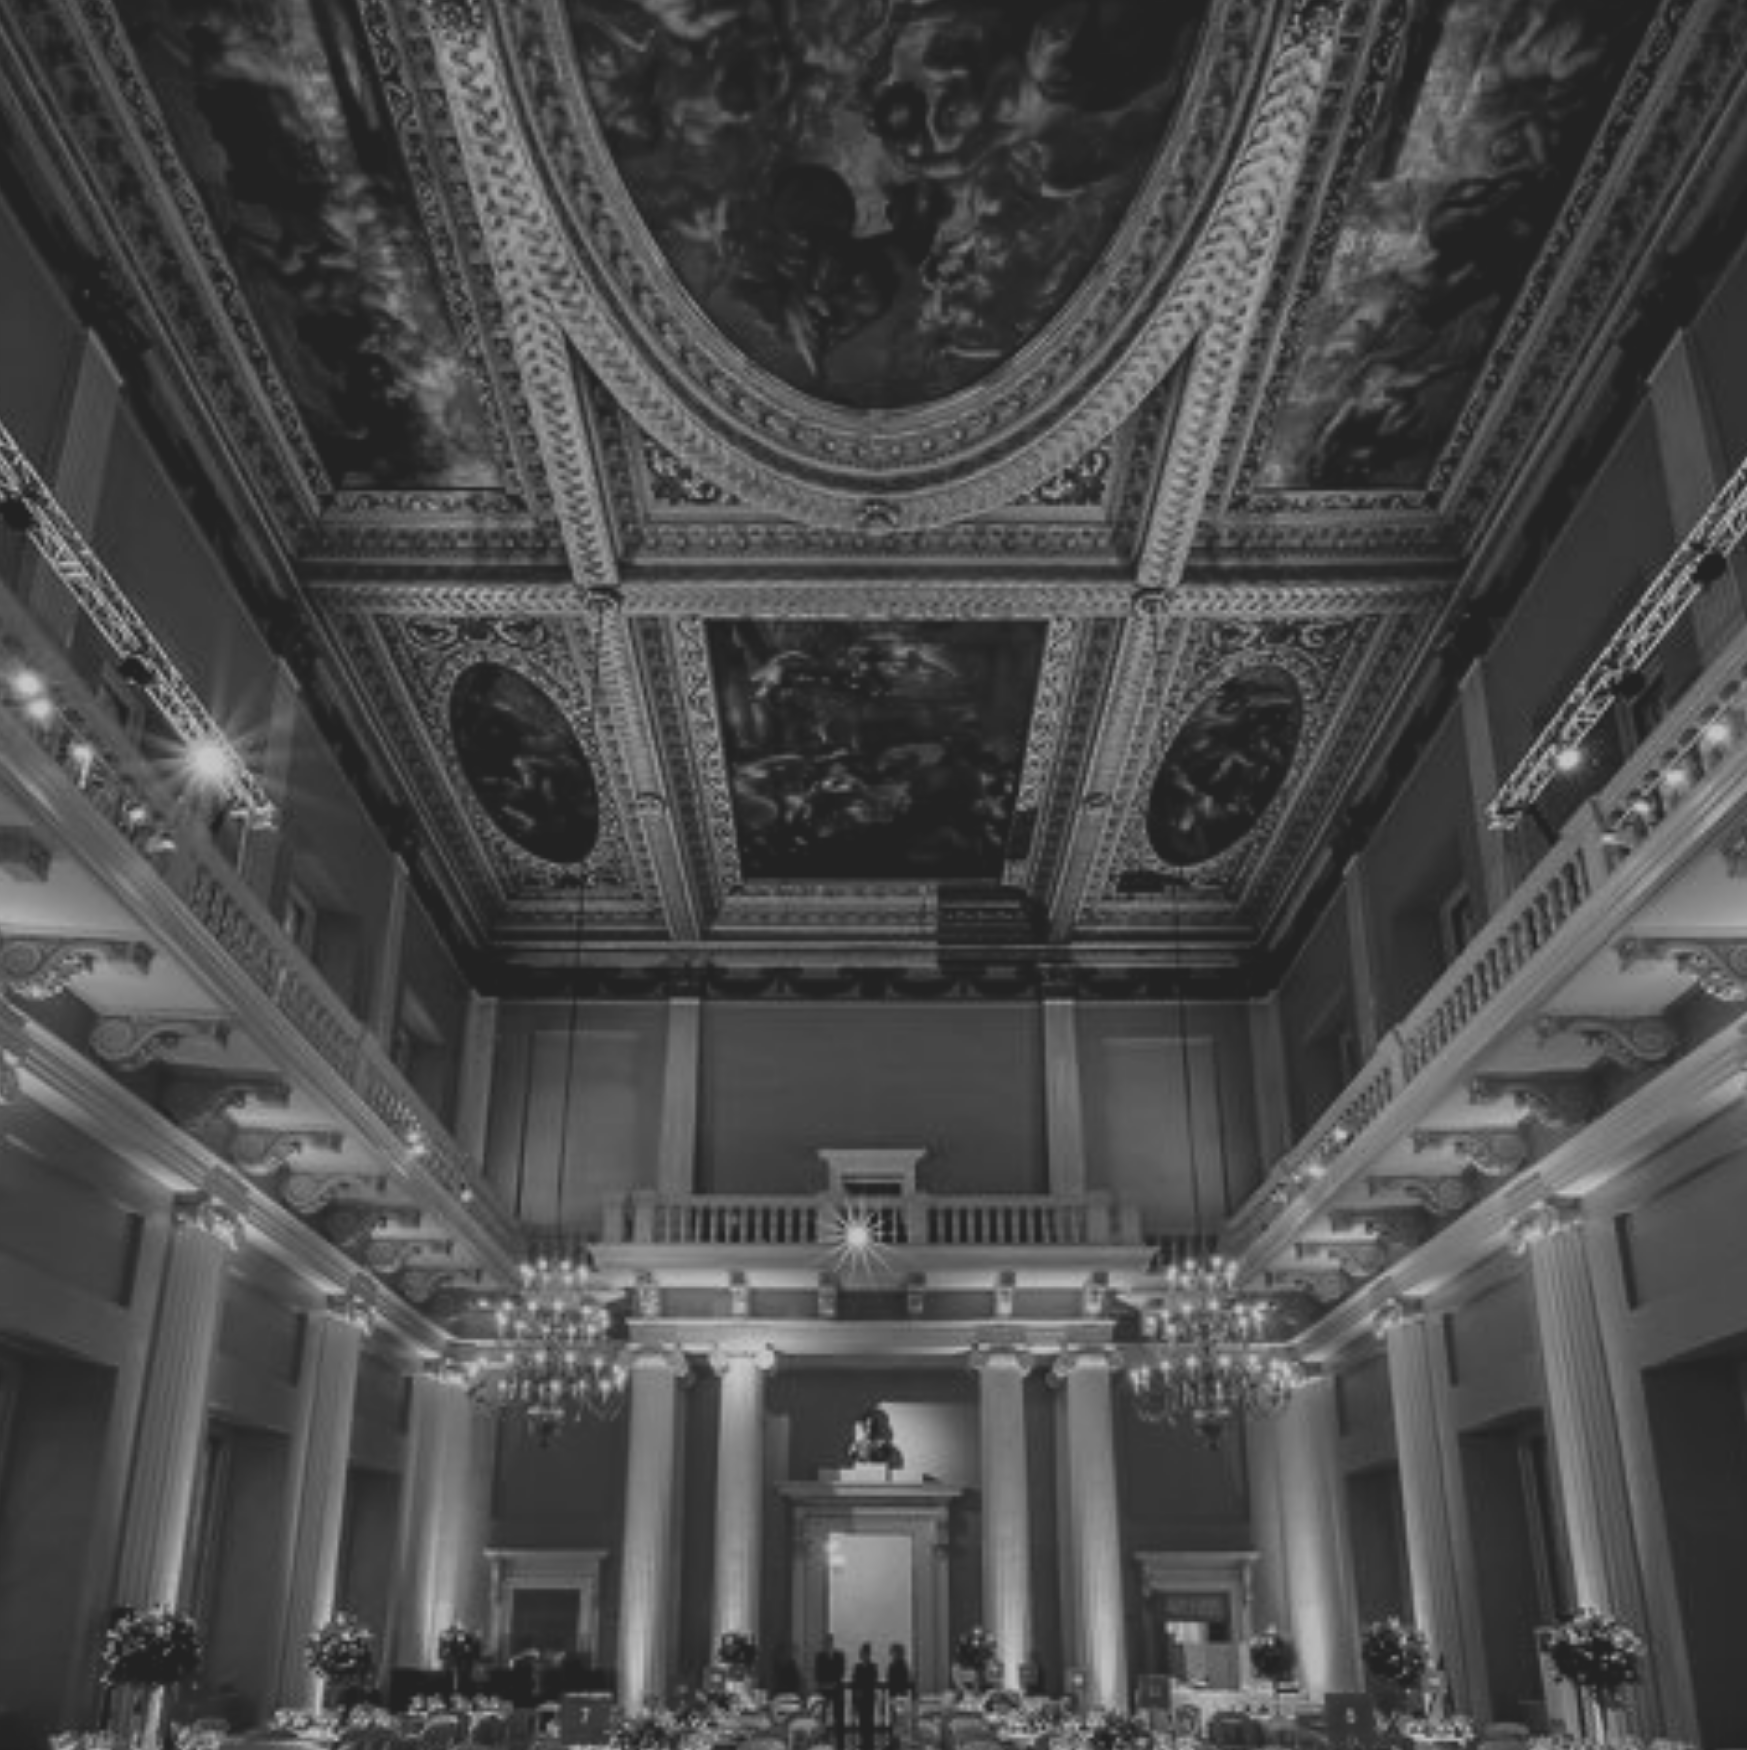 Christmas Party Venues in London for 2020